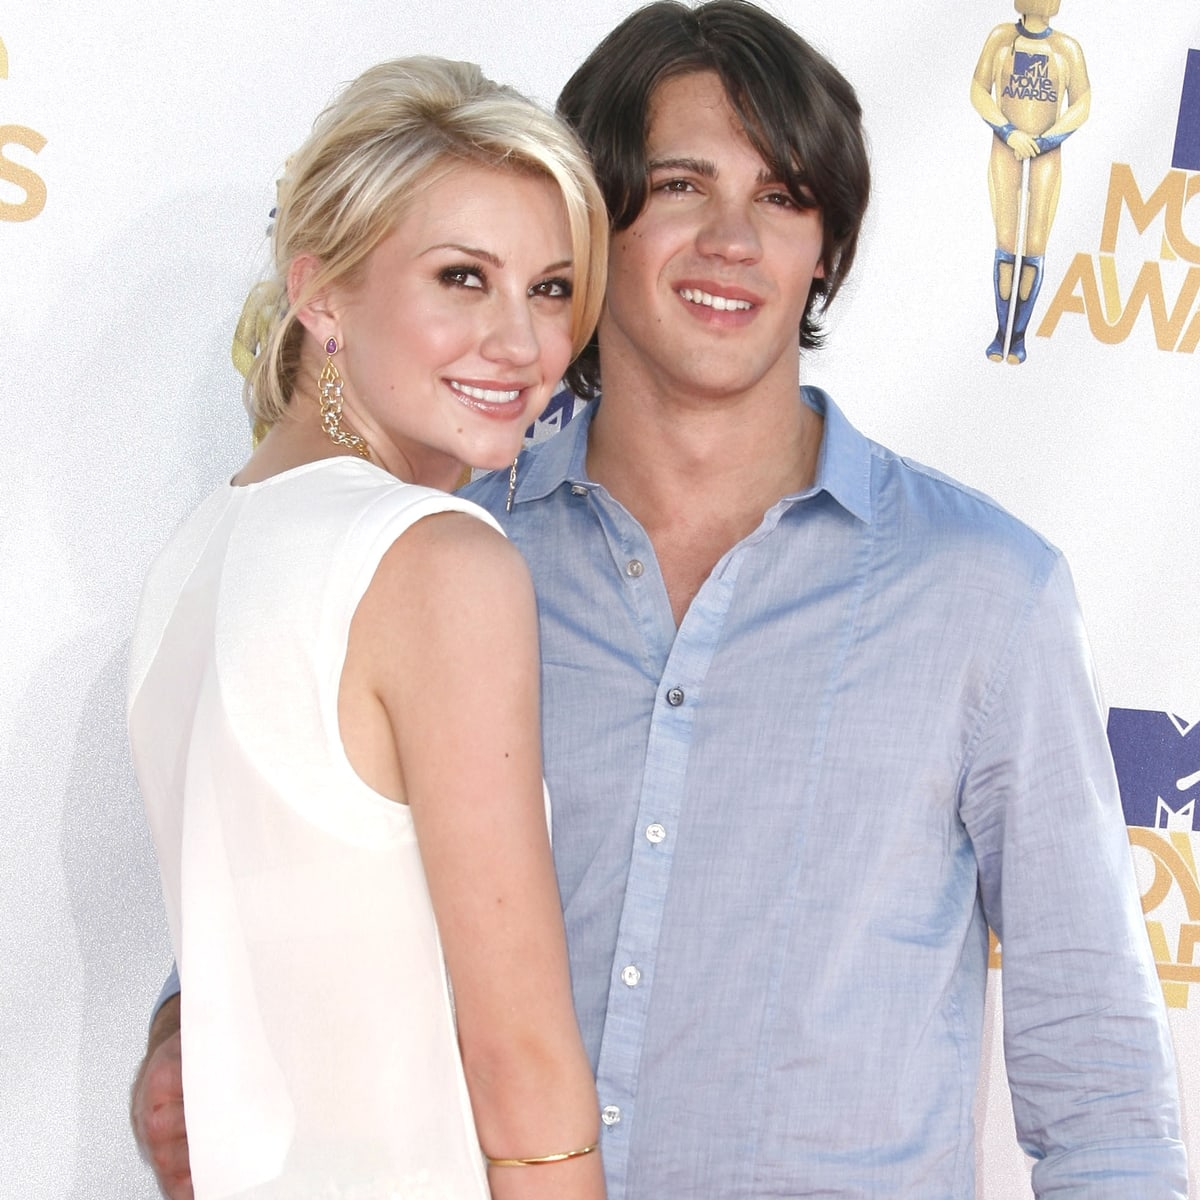 Chelsea Kane Staub and Steven R. McQueen met at the pilot for Wizards of Waverly Place and dated for two years